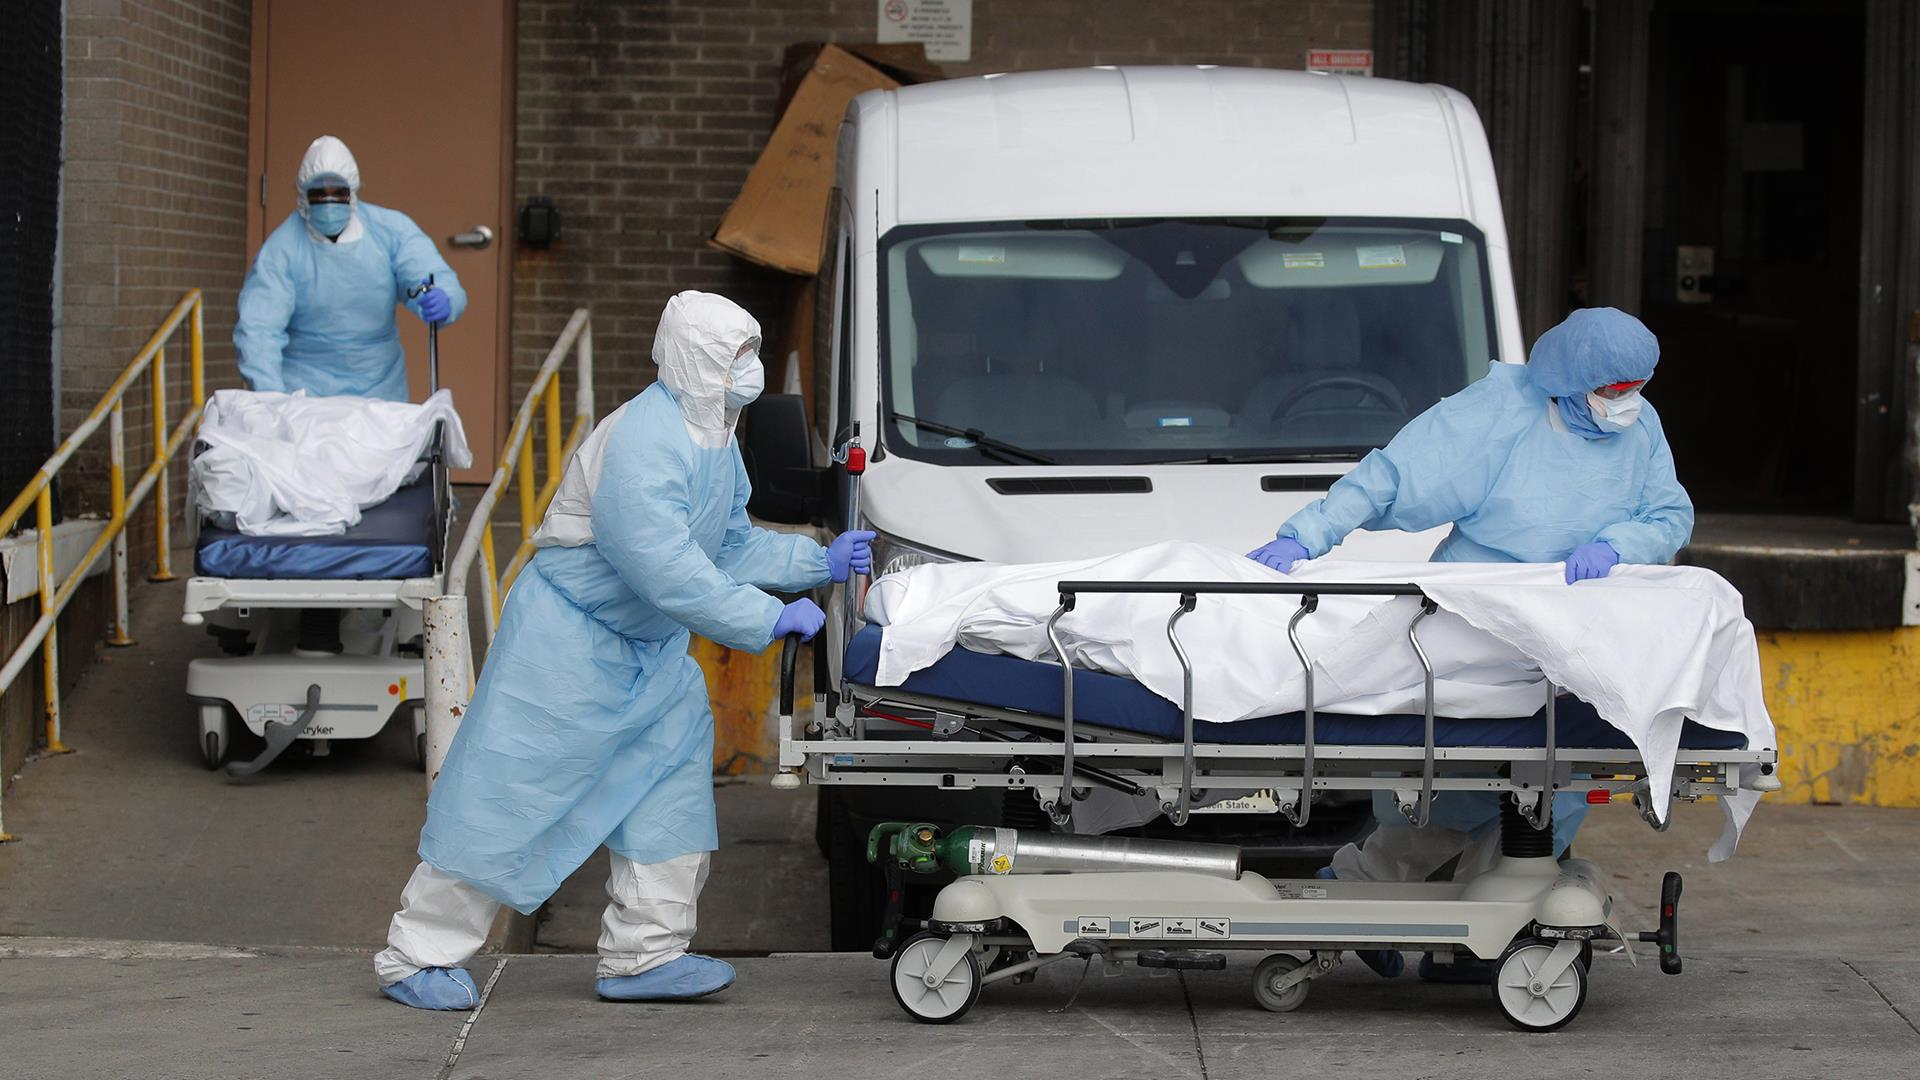 NYC medical workers treating coronavirus describe fear, confusion with protective equipment rationed